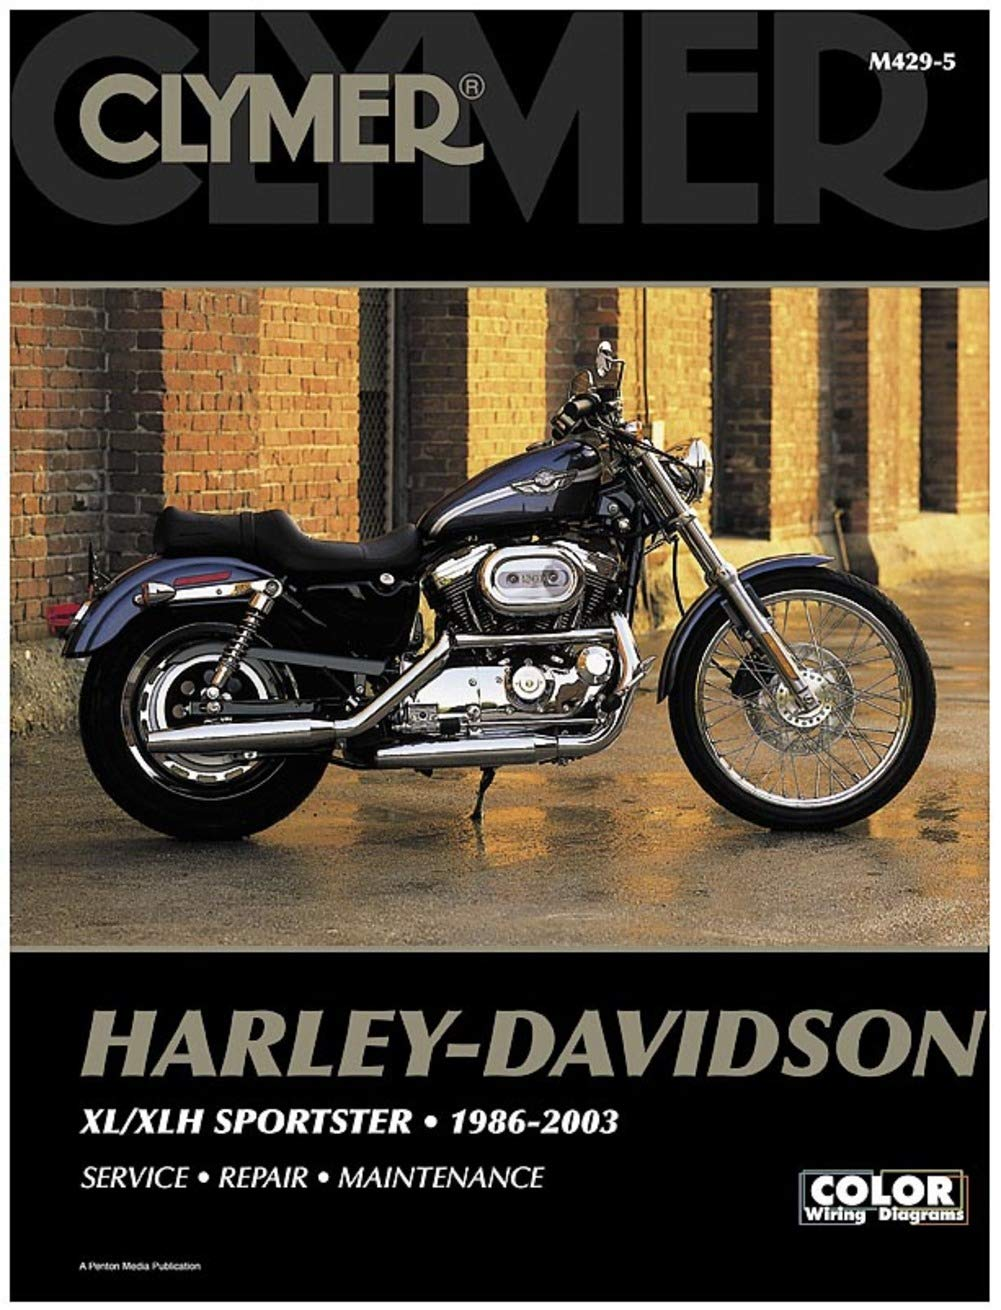 Read E-Book Online 2003 883 Harley Davidson Headlight Wiring ... on harley knucklehead wiring diagram, harley flh wiring diagram, harley speedometer wiring diagram, 1999 softail wiring diagram, harley fl wiring diagram, harley sportster wiring diagram, 99 harley wiring diagram, harley softail parts diagram, harley fxr wiring diagram, harley wiring diagram for dummies, harley handlebar wiring diagram, harley coil wiring diagram, harley shovelhead wiring diagram, harley wiring diagram wires, harley wide glide wiring diagram, 2000 harley wiring diagram, simple harley wiring diagram, harley rocker wiring diagram, 99 softail wiring diagram, harley electra glide wiring harness diagram,